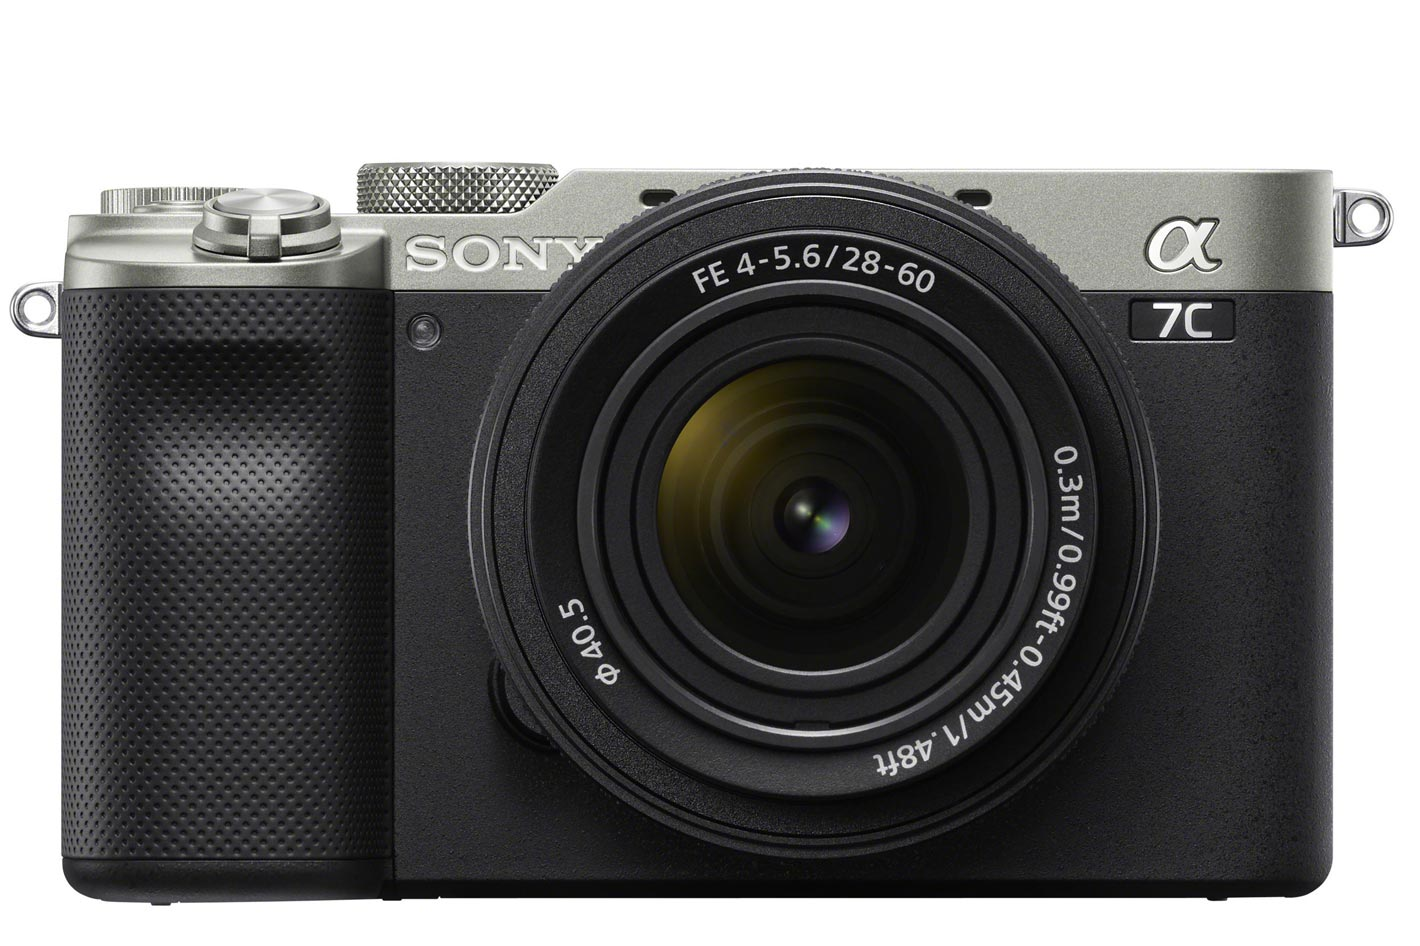 Sony Alpha 7C and lens: the world's smallest full-frame camera system